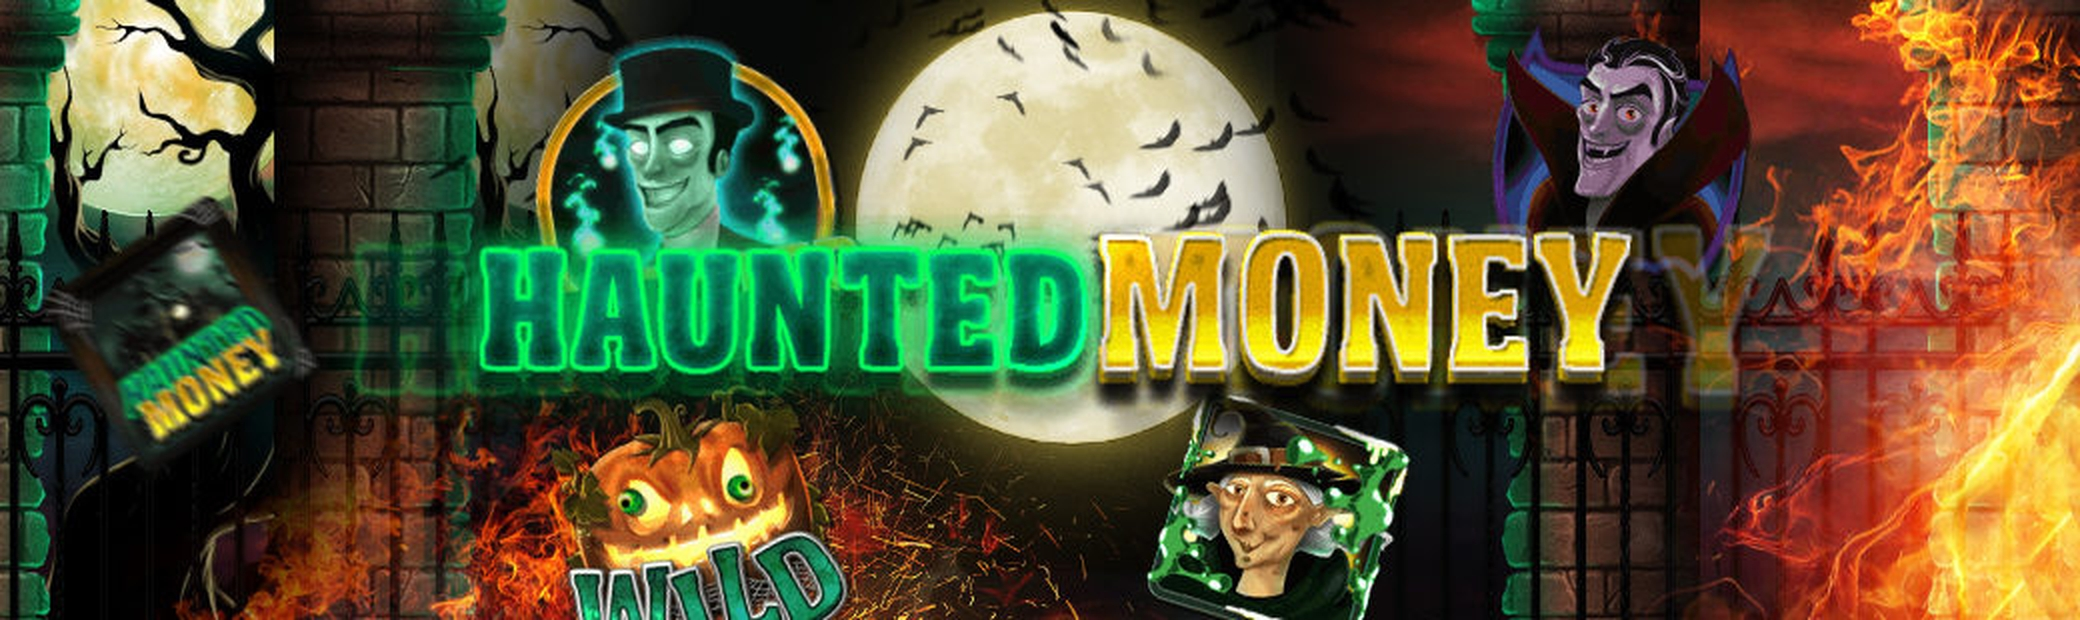 The Haunted Money Online Slot Demo Game by Inbet Games